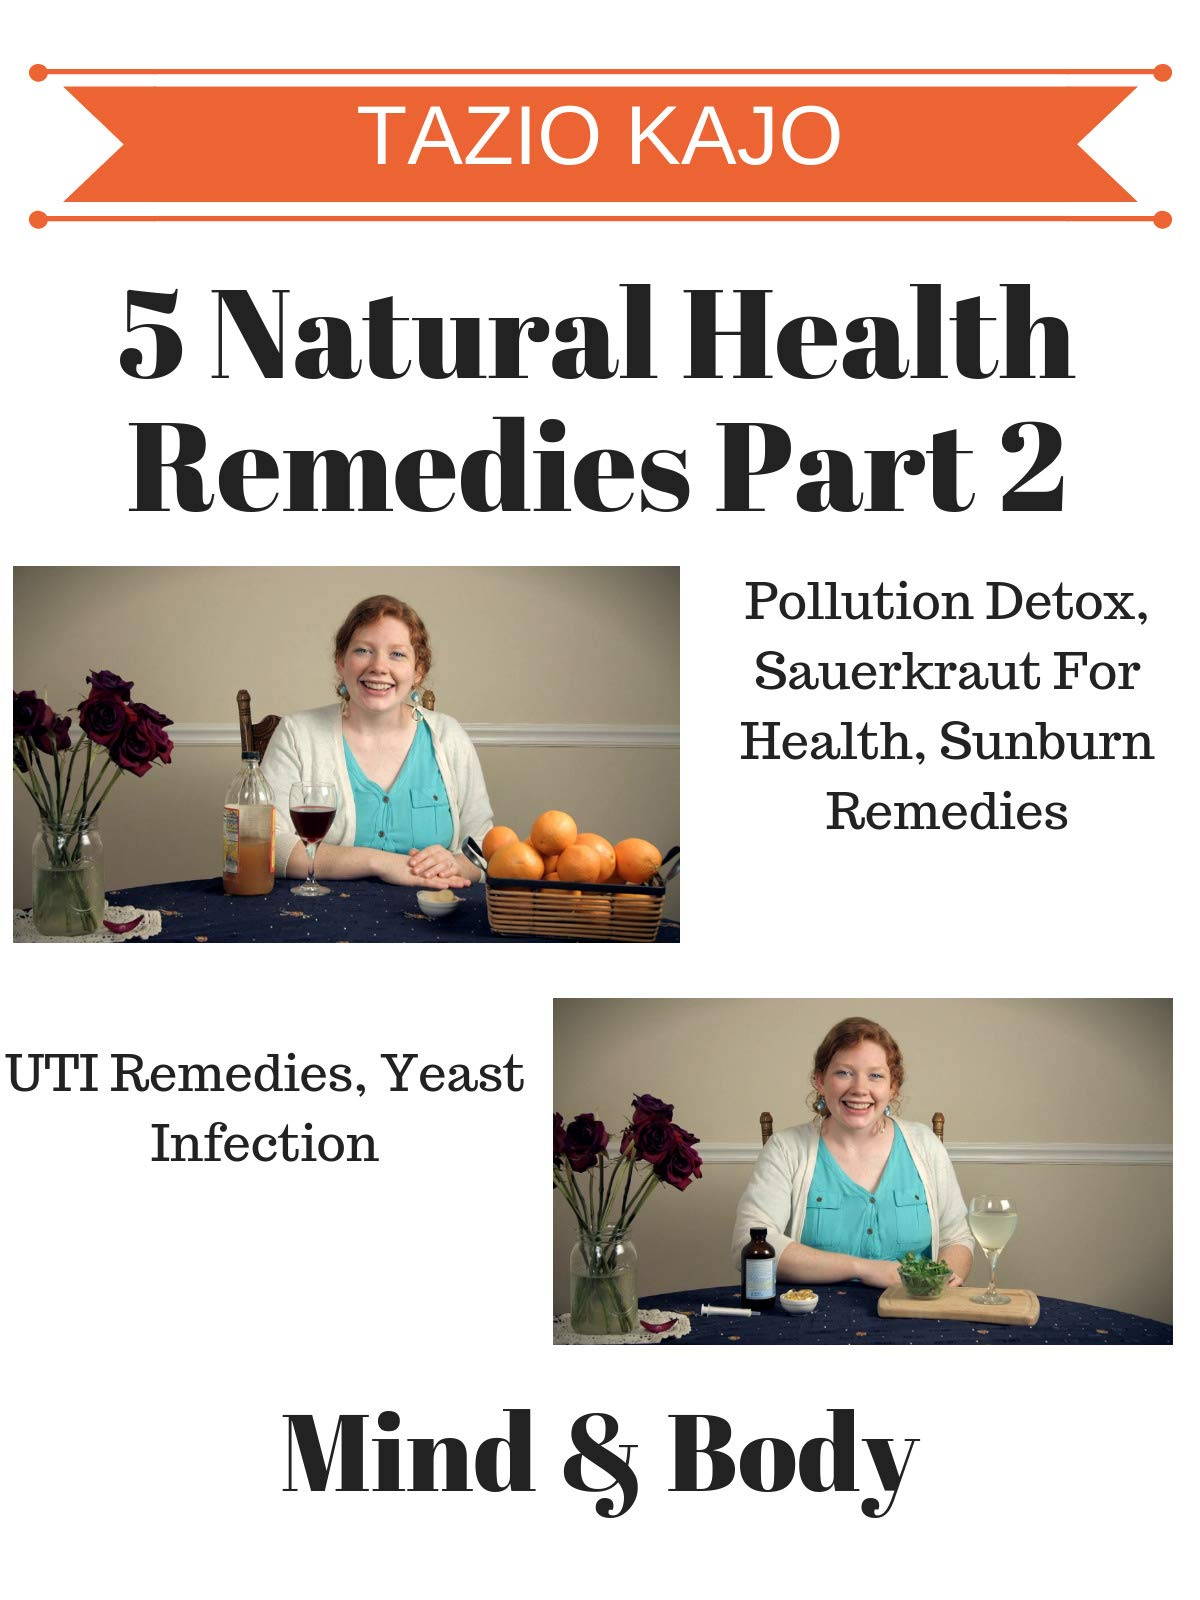 5 Natural Health Remedies Part 2